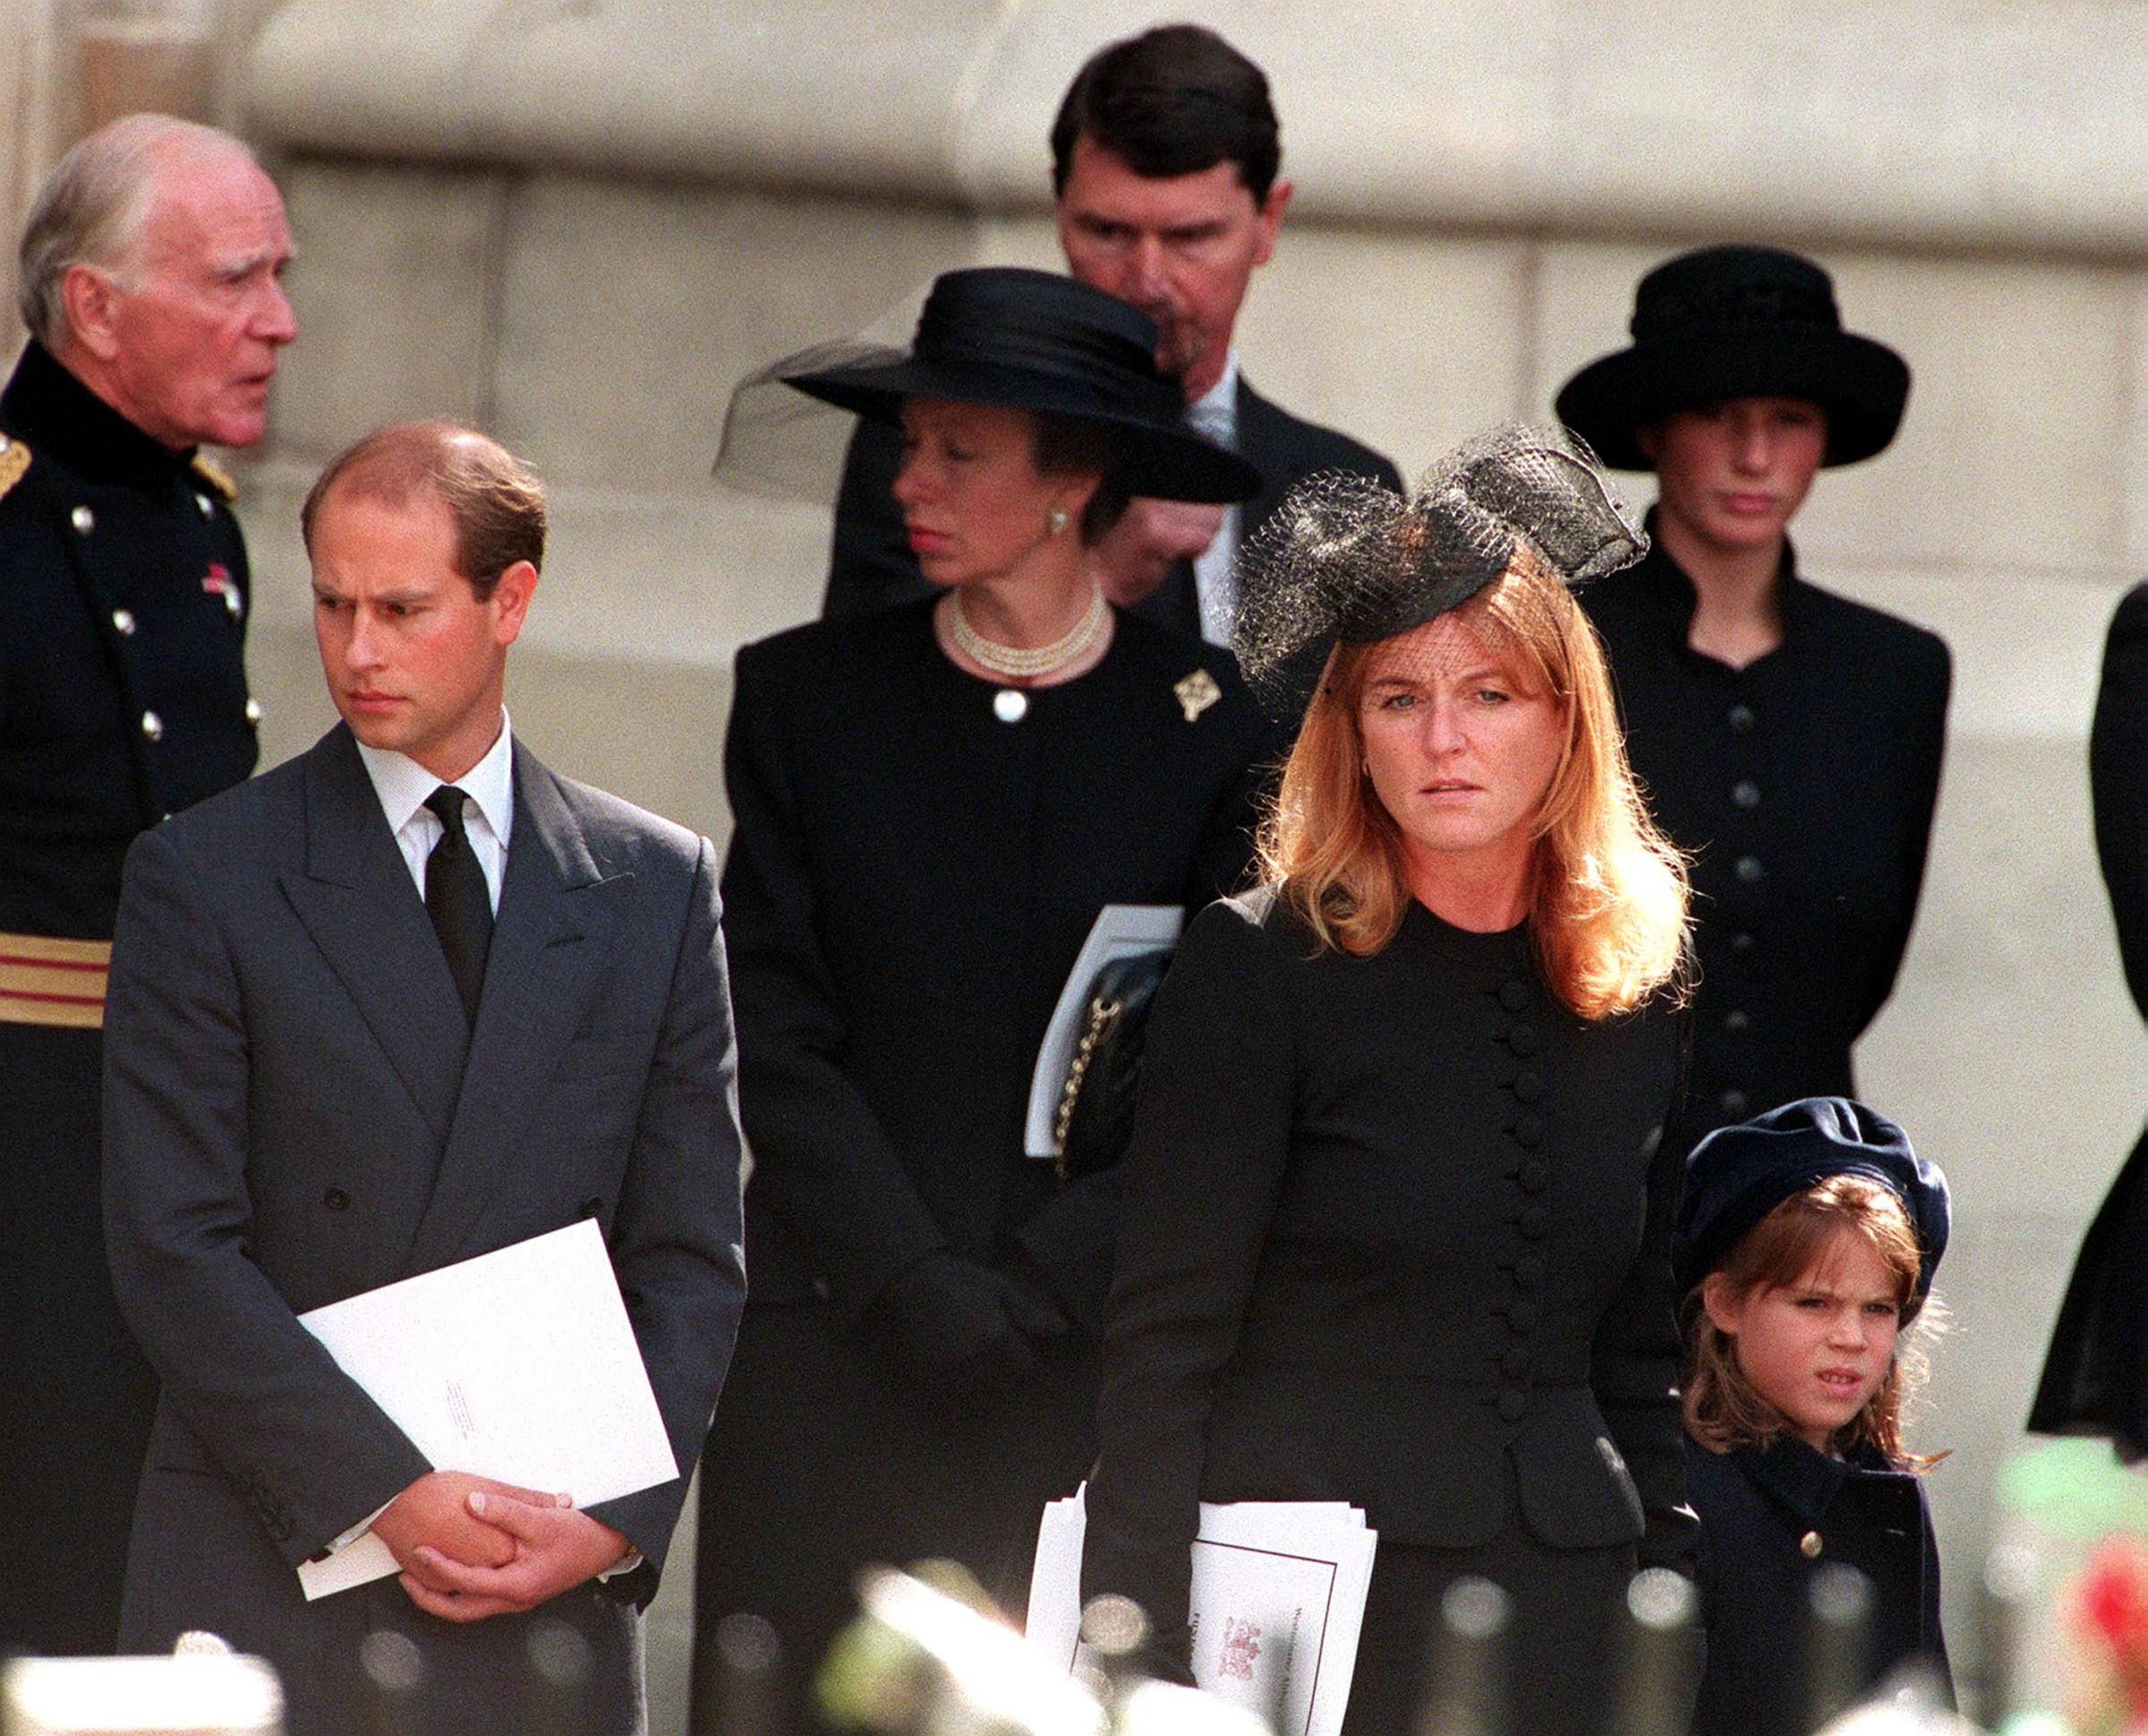 Princess Diana Funeral Photos 30 Unforgettable Moments At The Funeral Of Princess Diana